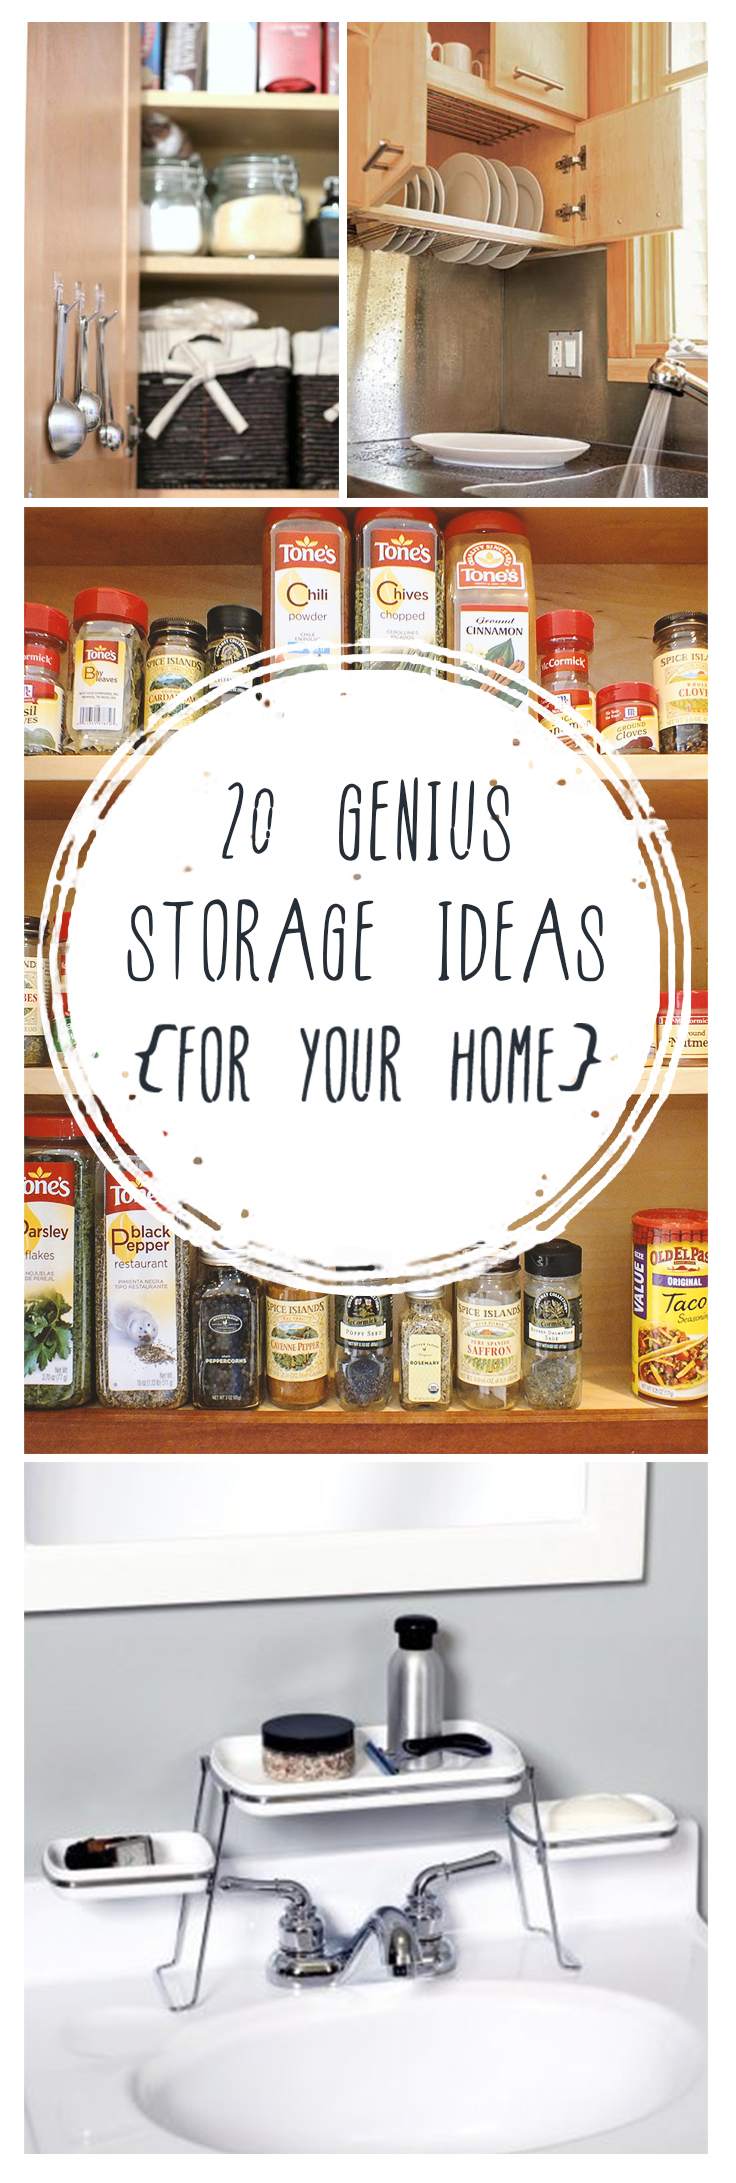 Storage, DIY home storage, easy home storage ideas, home storage hacks, popular pin, unique home storage ideas, home organization.